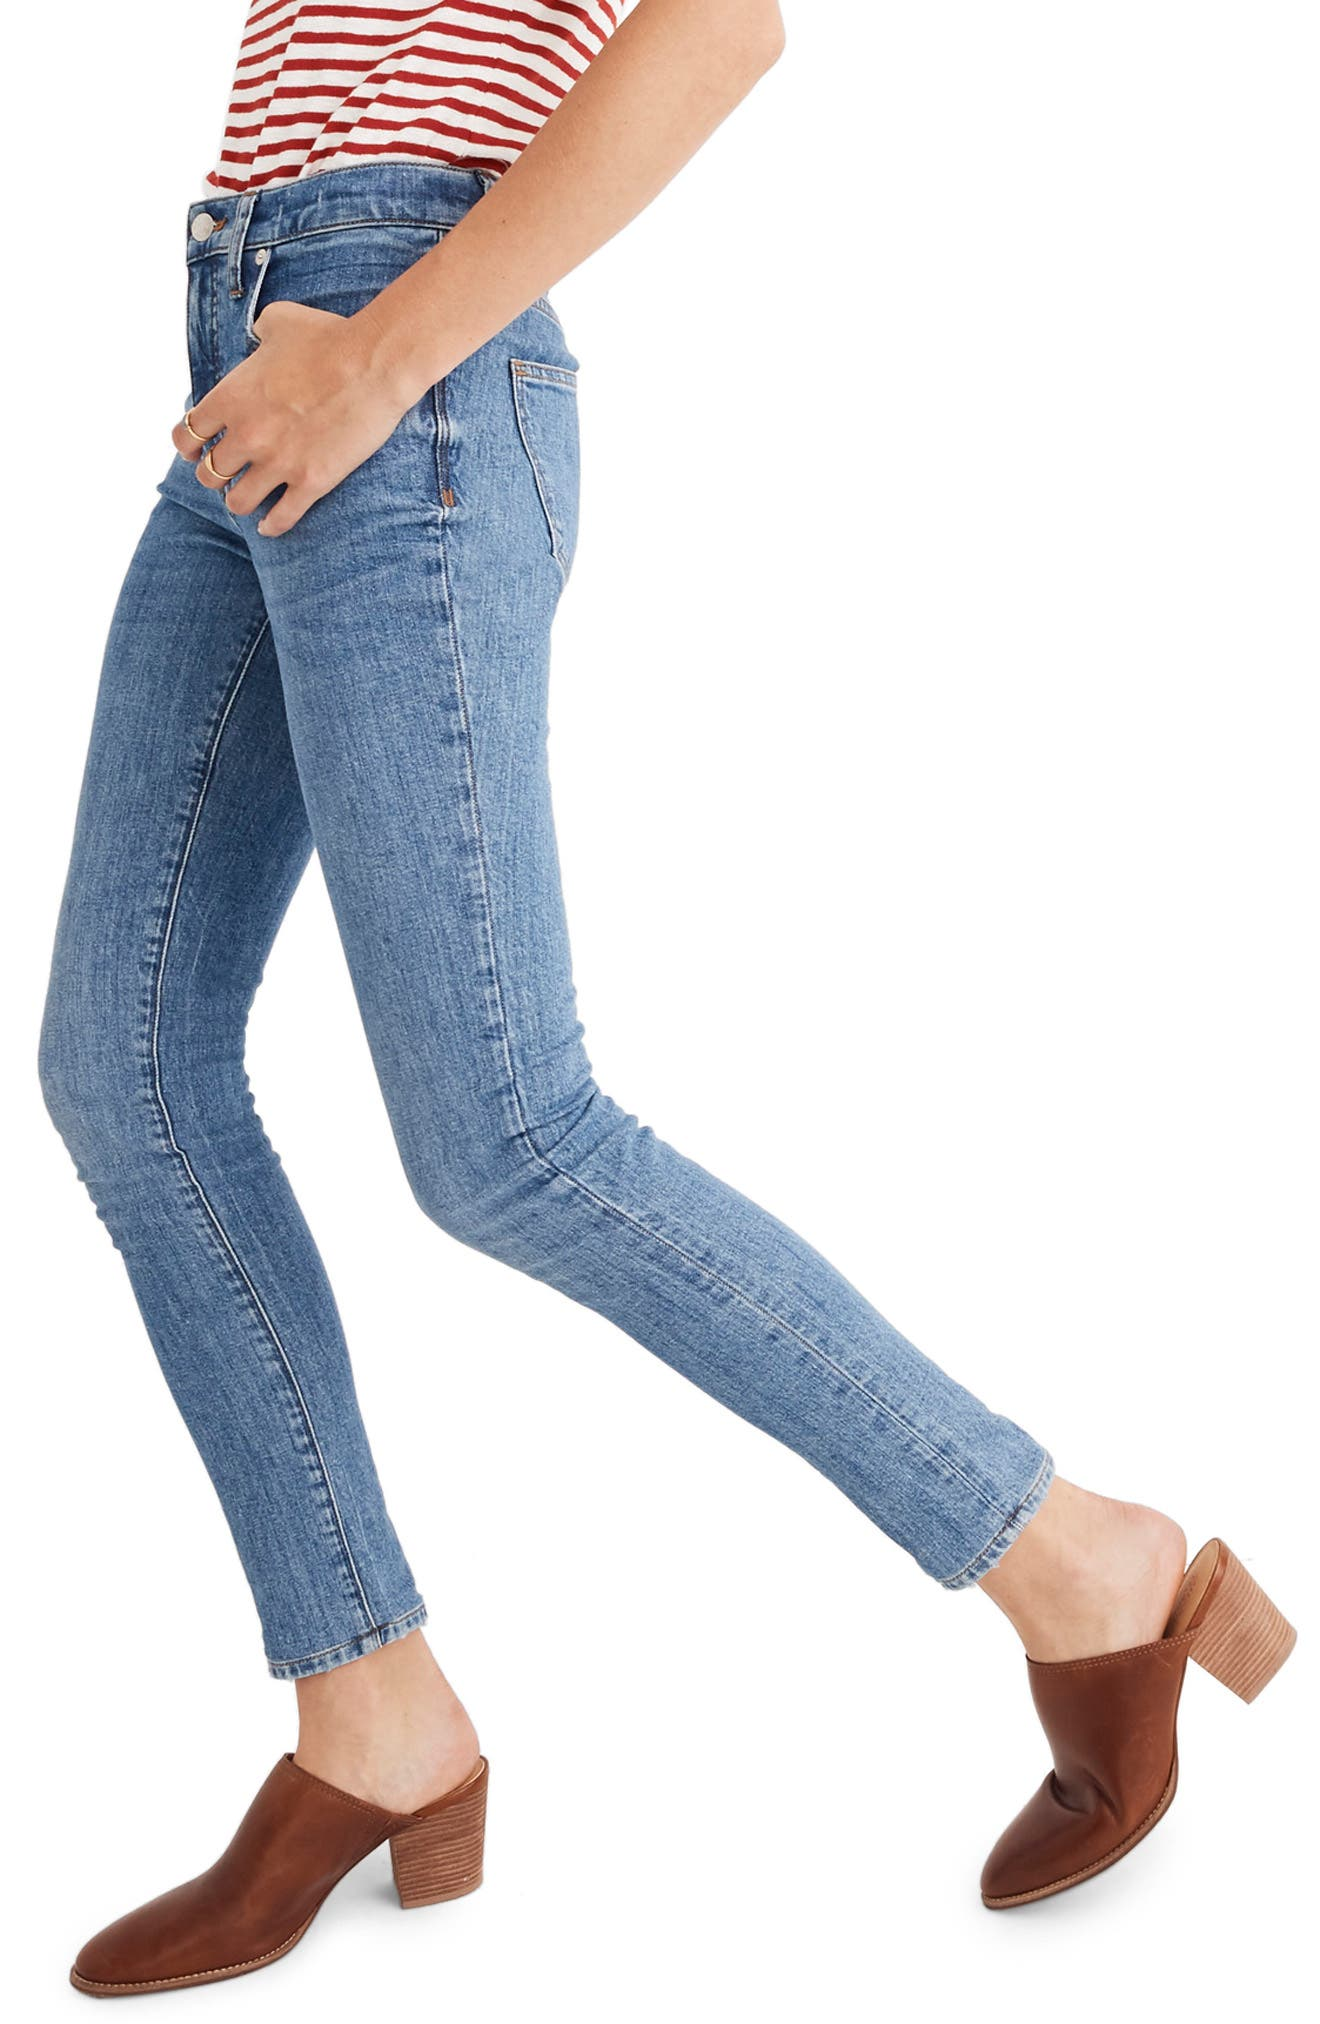 9-Inch High Waist Stretch Skinny Jeans,                             Alternate thumbnail 4, color,                             REGINA